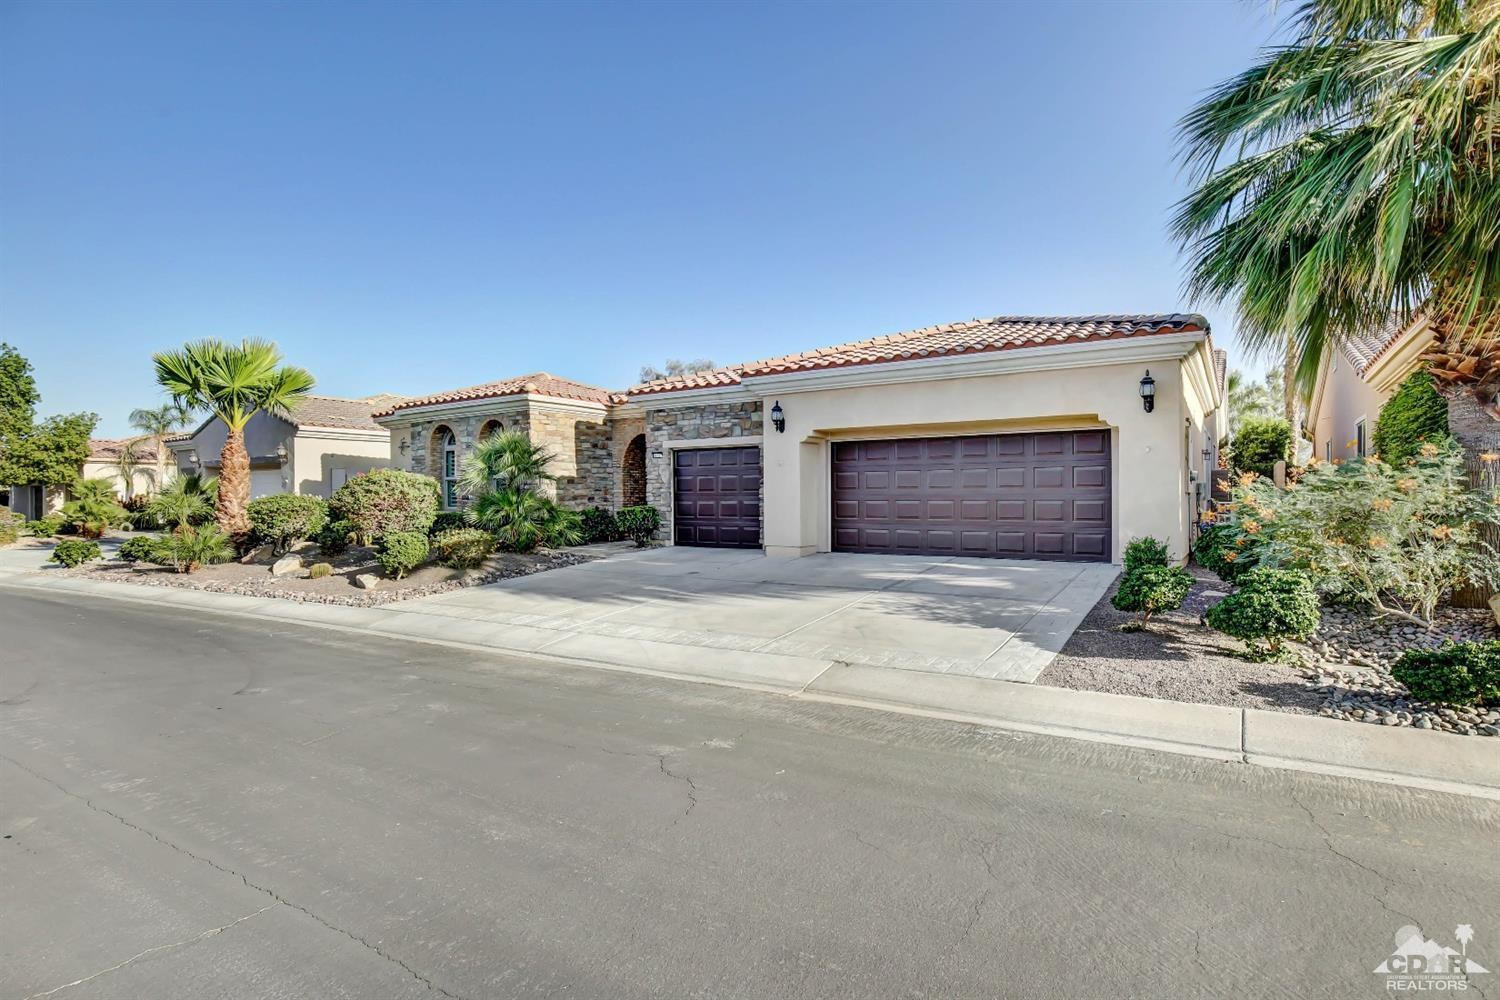 81157 avenida los circos  South, Indio